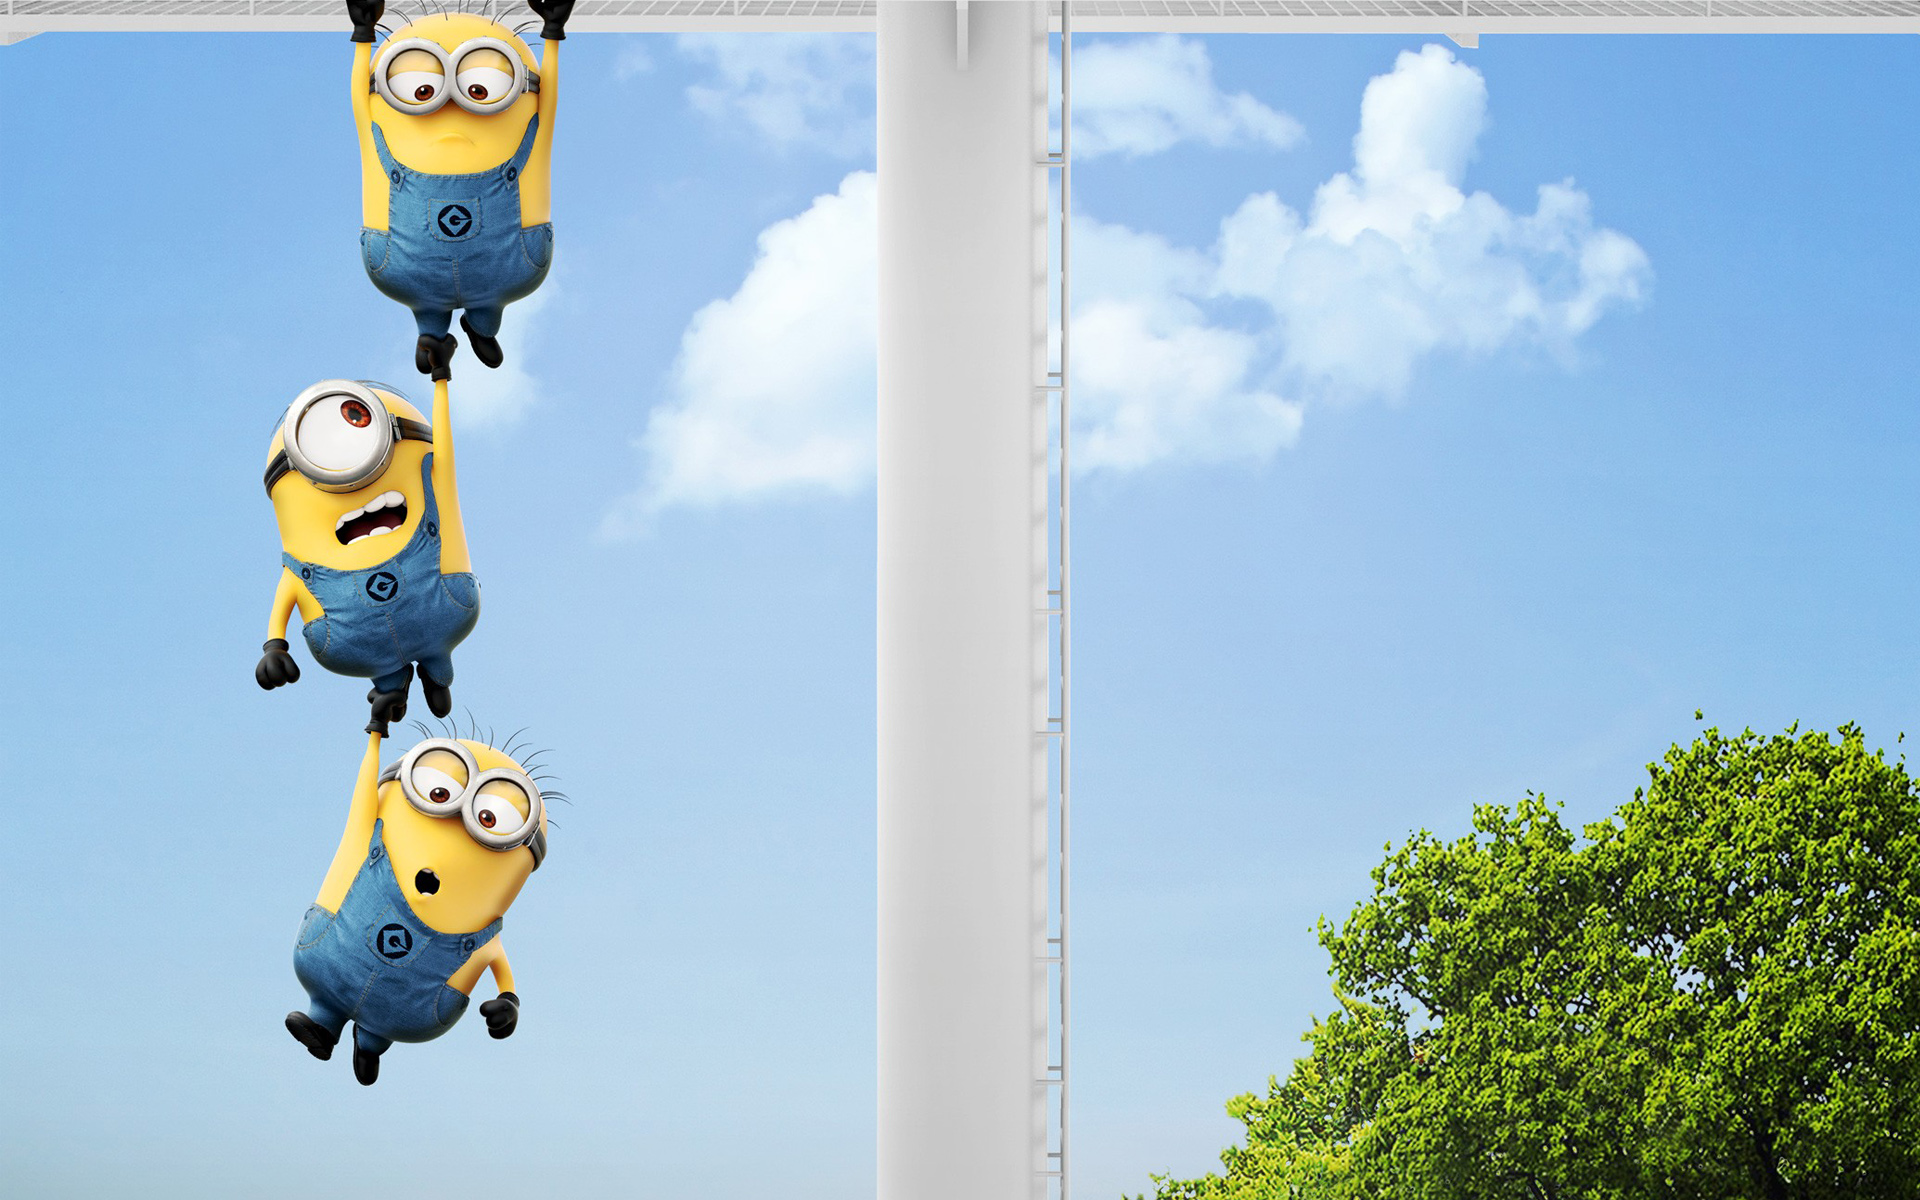 2013 Despicable Me 2 Minions 1232.16 Kb